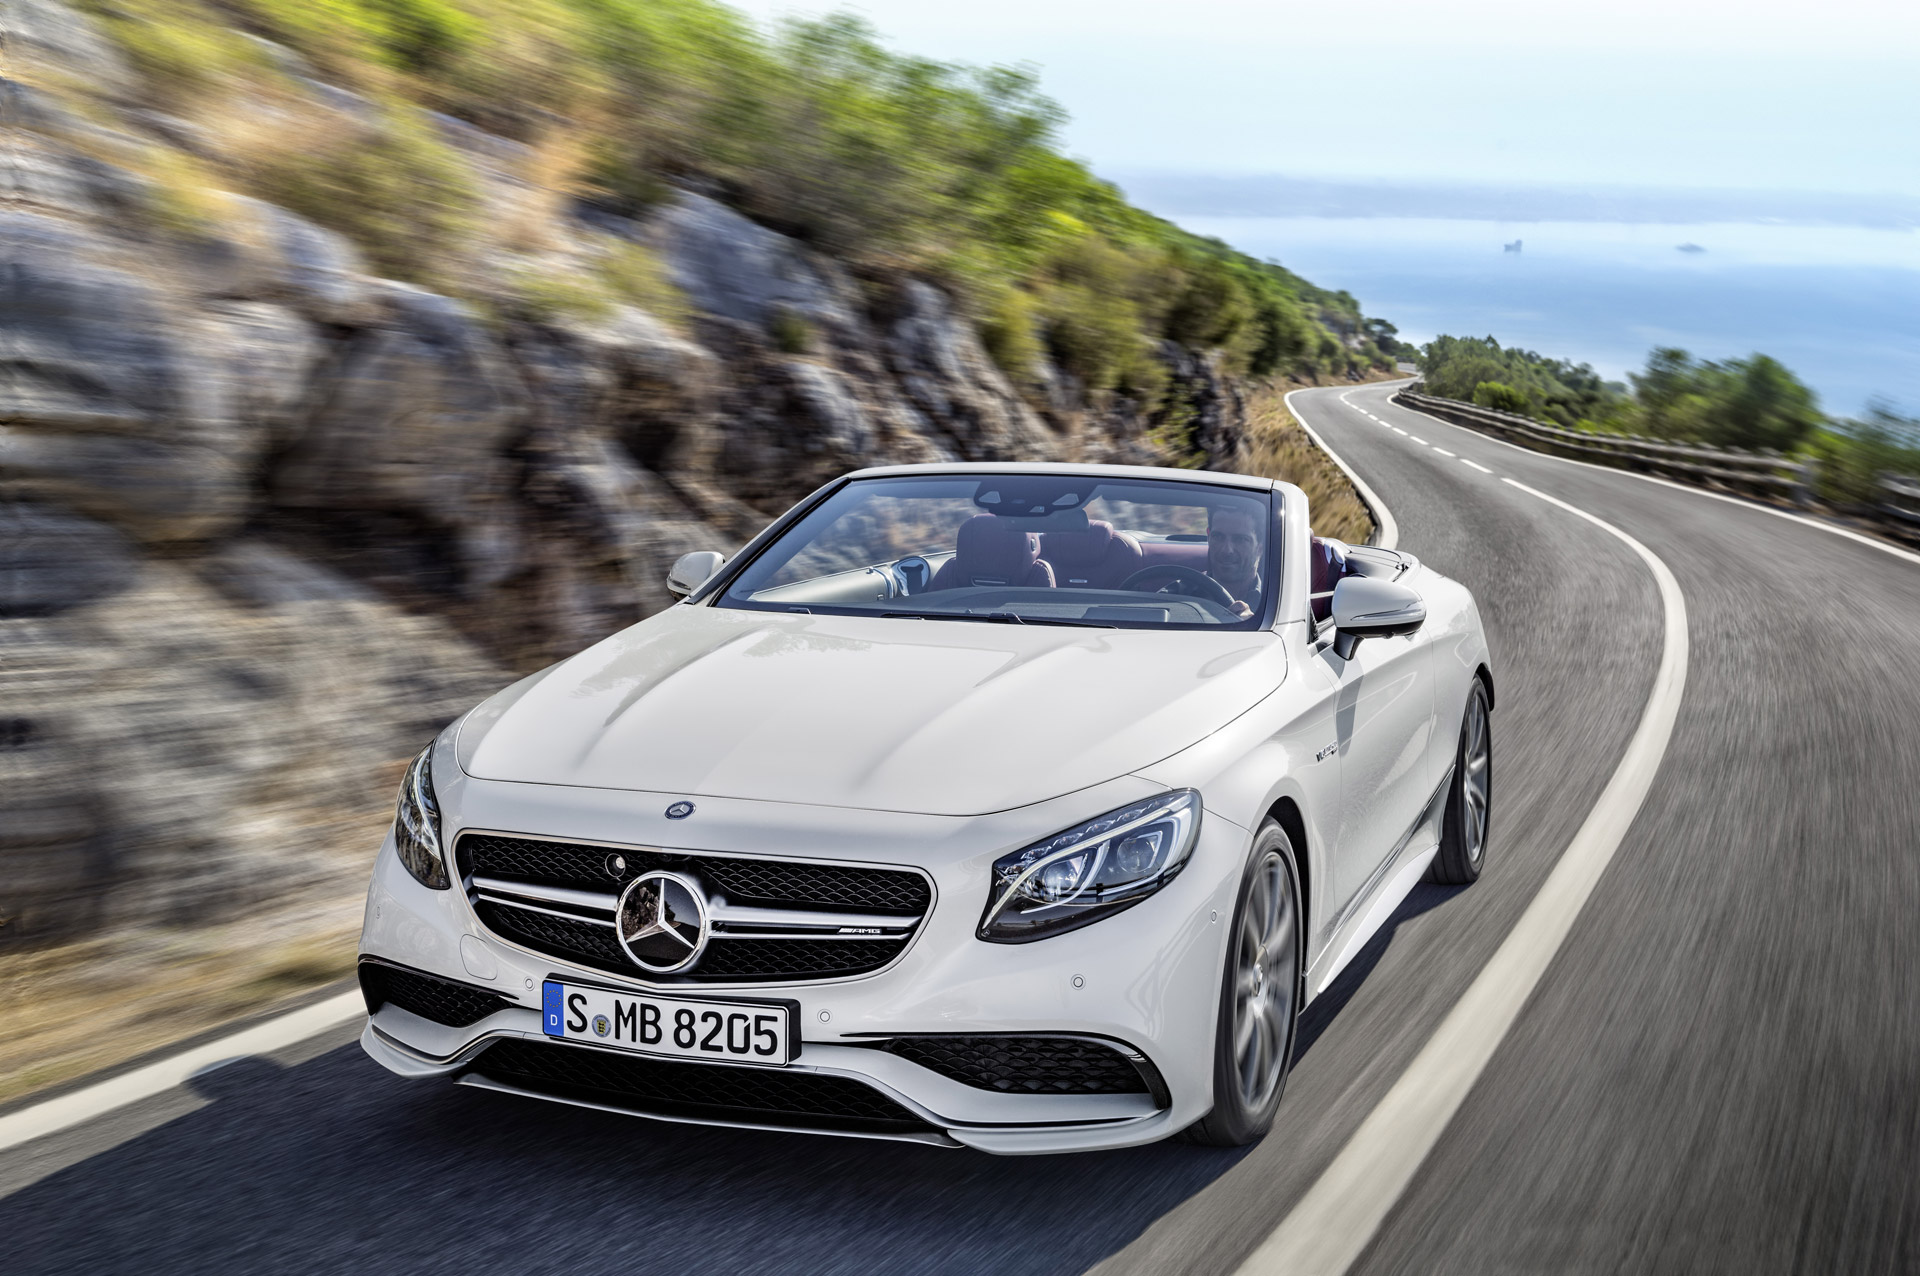 S 63 Amg 2017 >> 2017 Mercedes Amg S63 Cabriolet Detailed In New Video